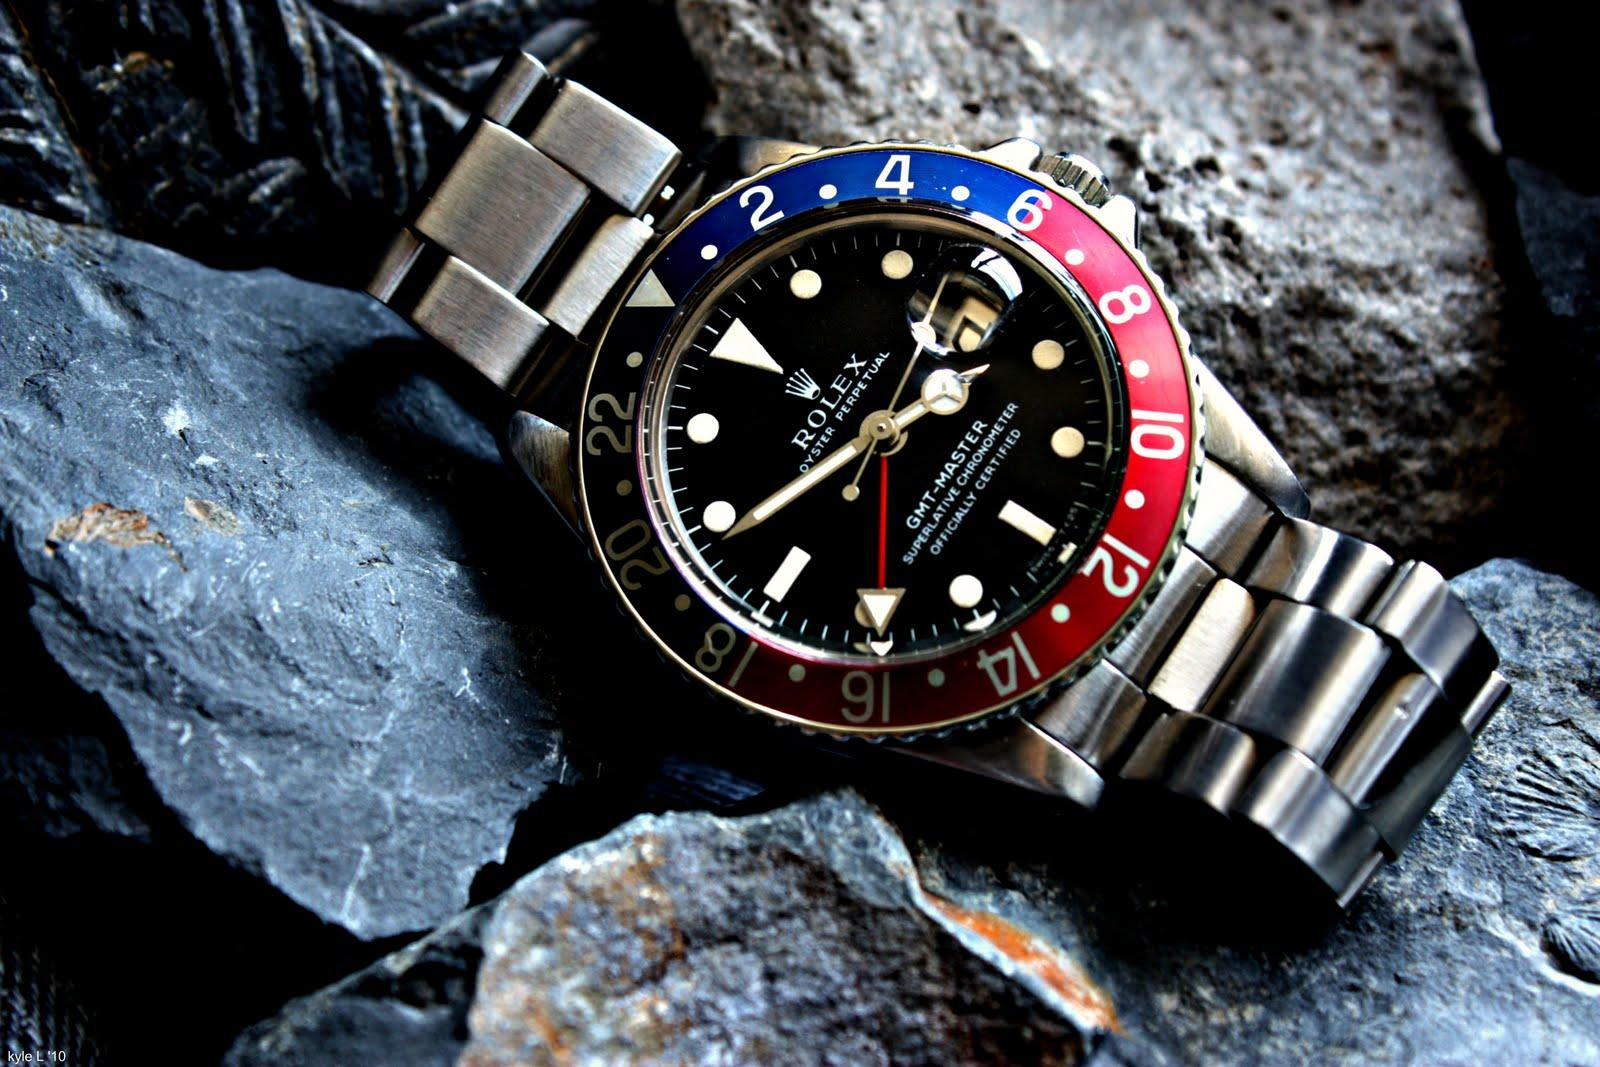 Rolex Watches Wallpapers 6